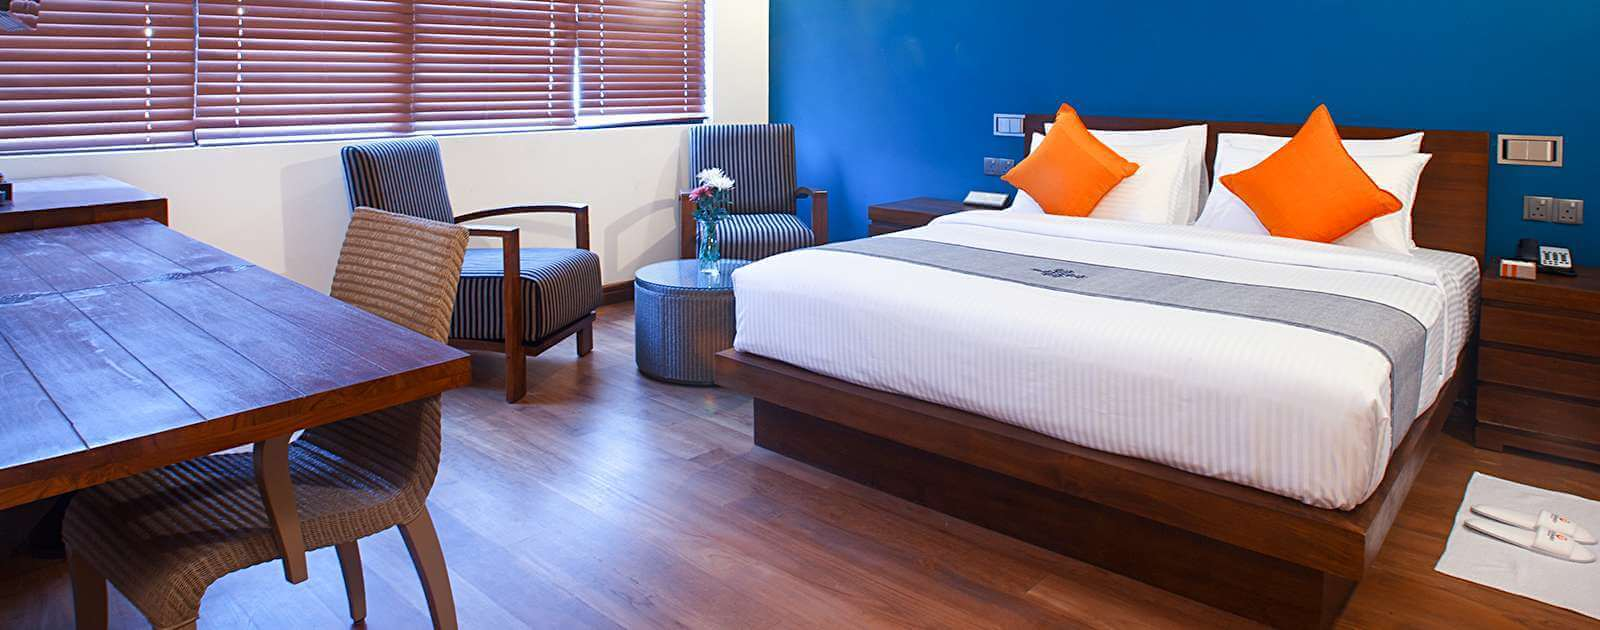 Comfortable rooms in Colombo City hotels